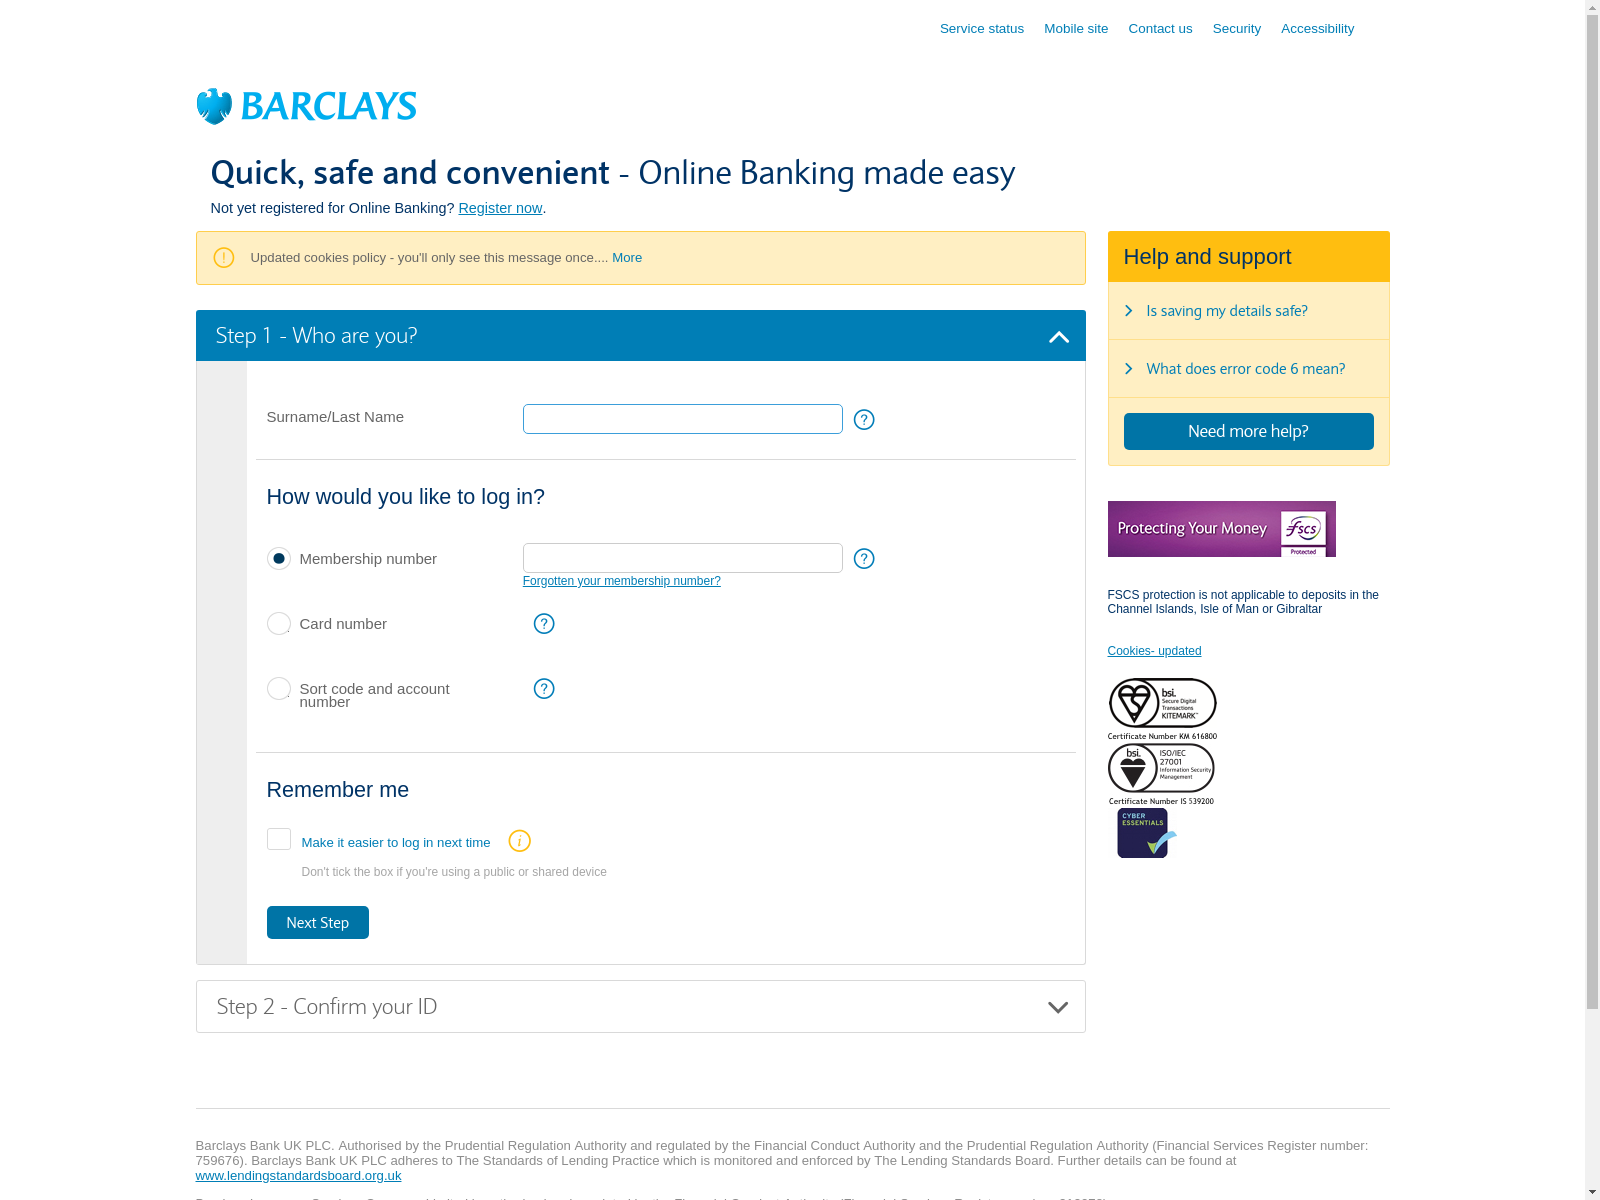 bank barclays co uk - urlscan io